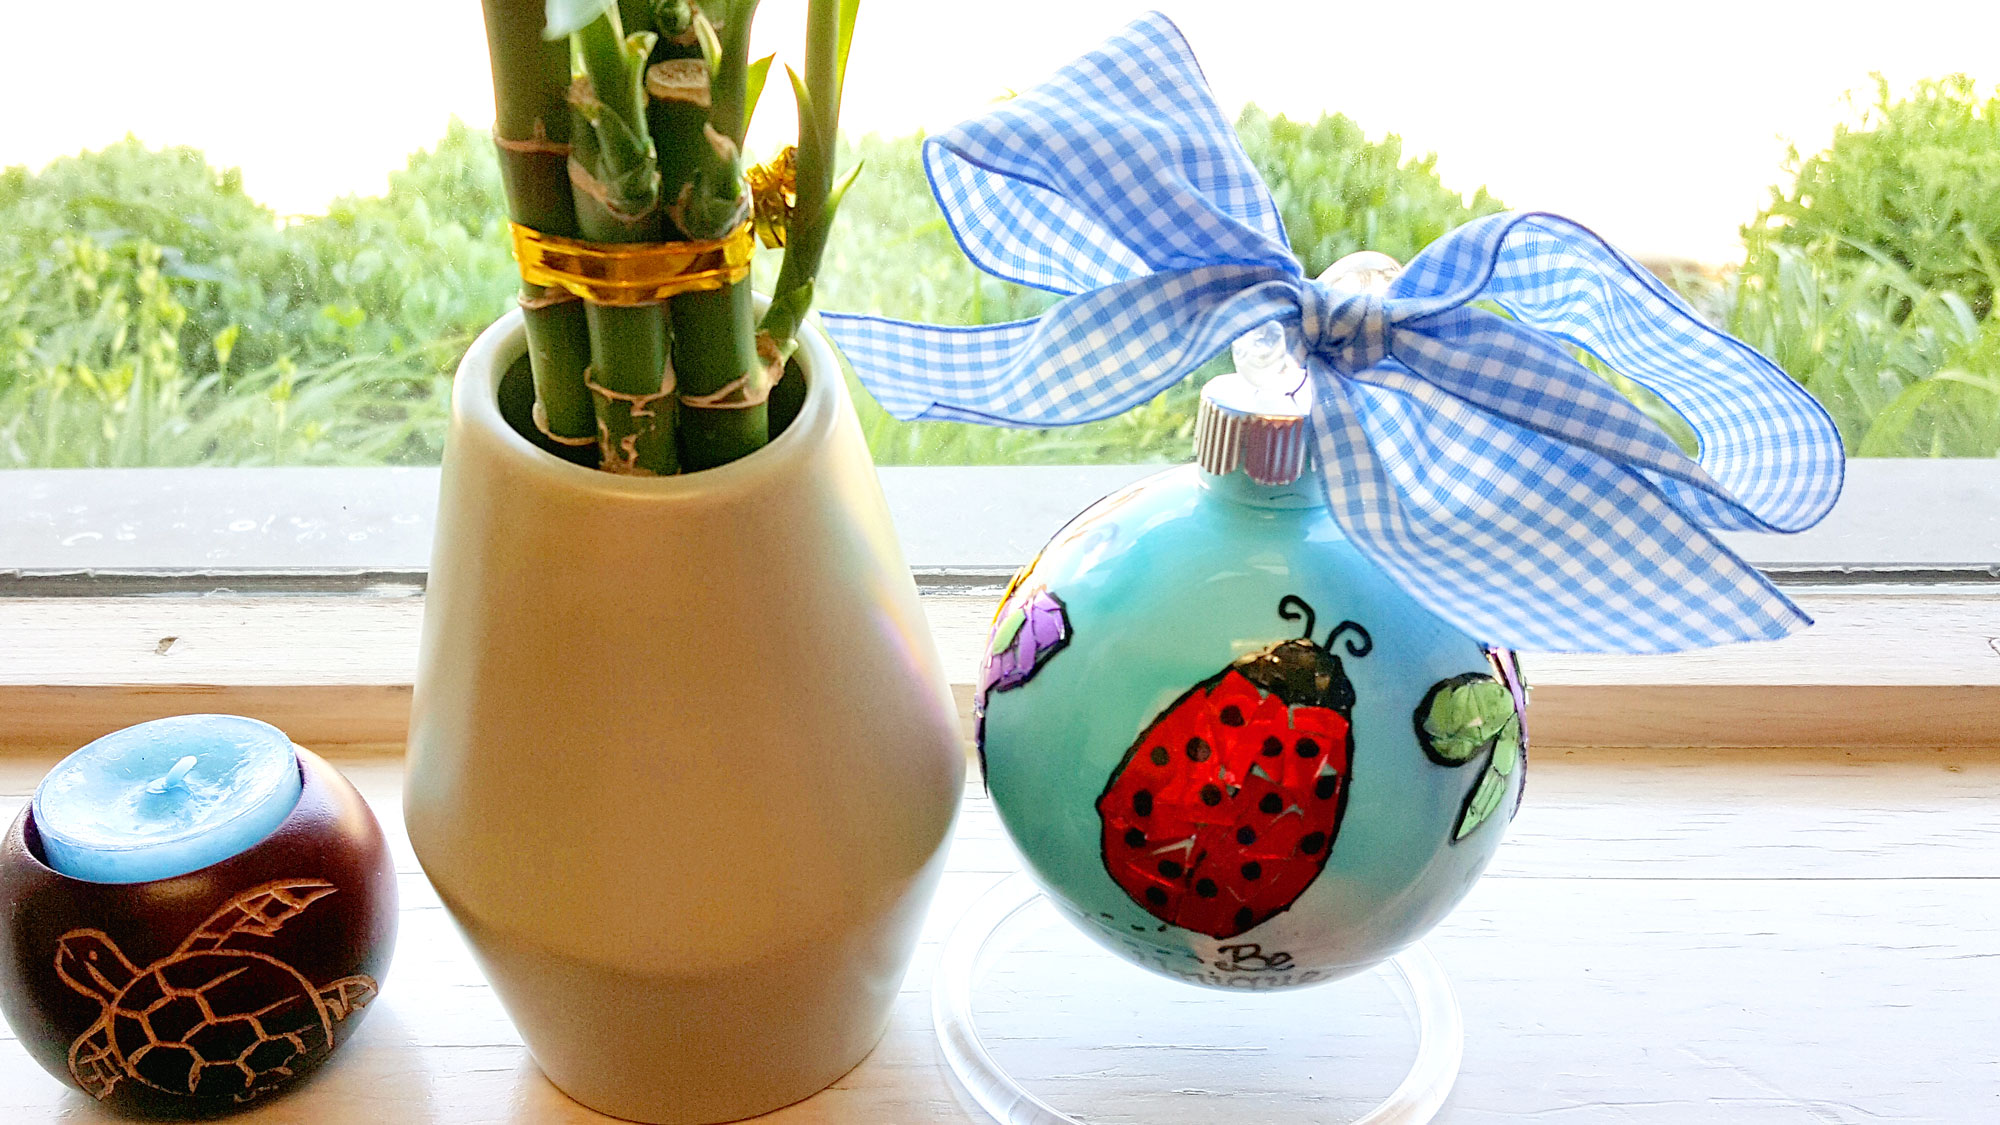 The final product sits on a window sill with a bright red ladybug facing the camera, next to a bamboo plant | OrnamentShop.com